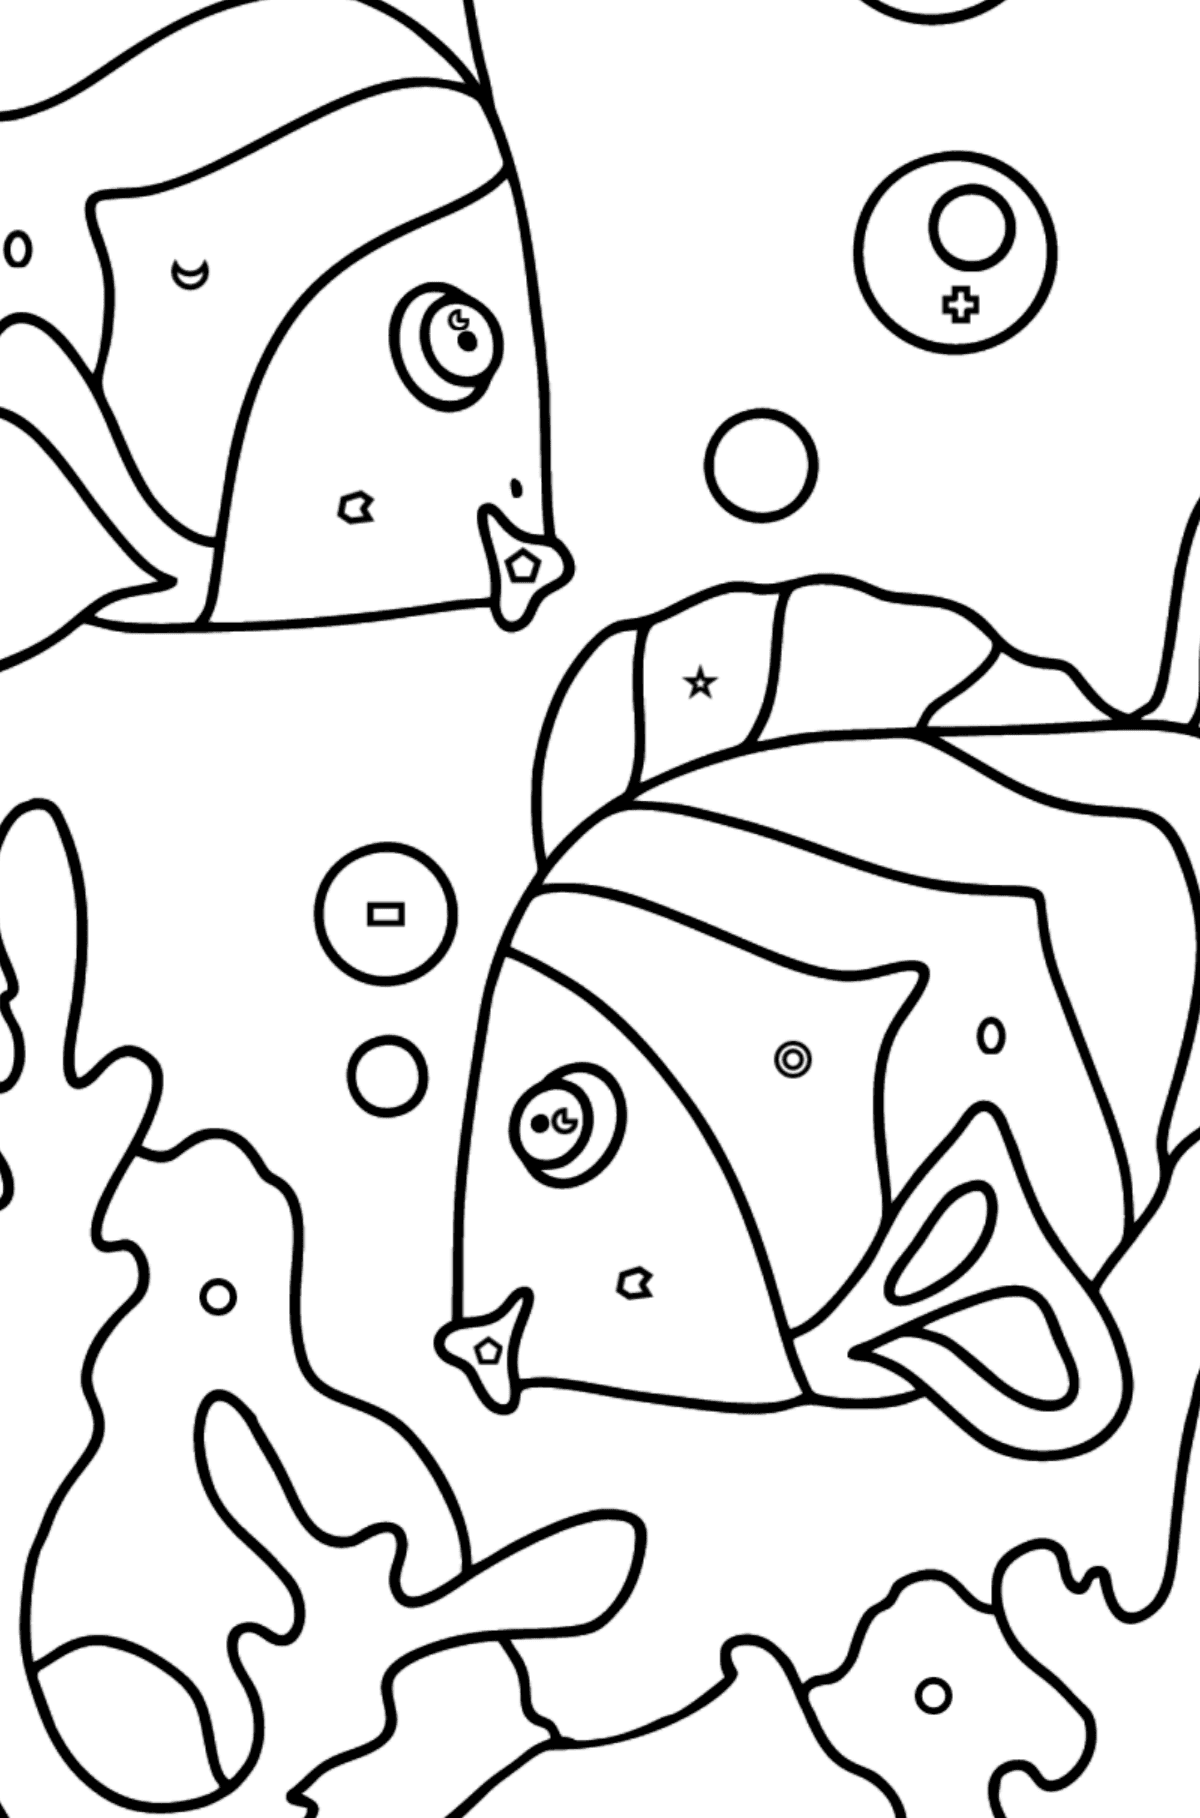 Coloring Page - Fish are Swimming Together - Coloring by Geometric Shapes for Kids